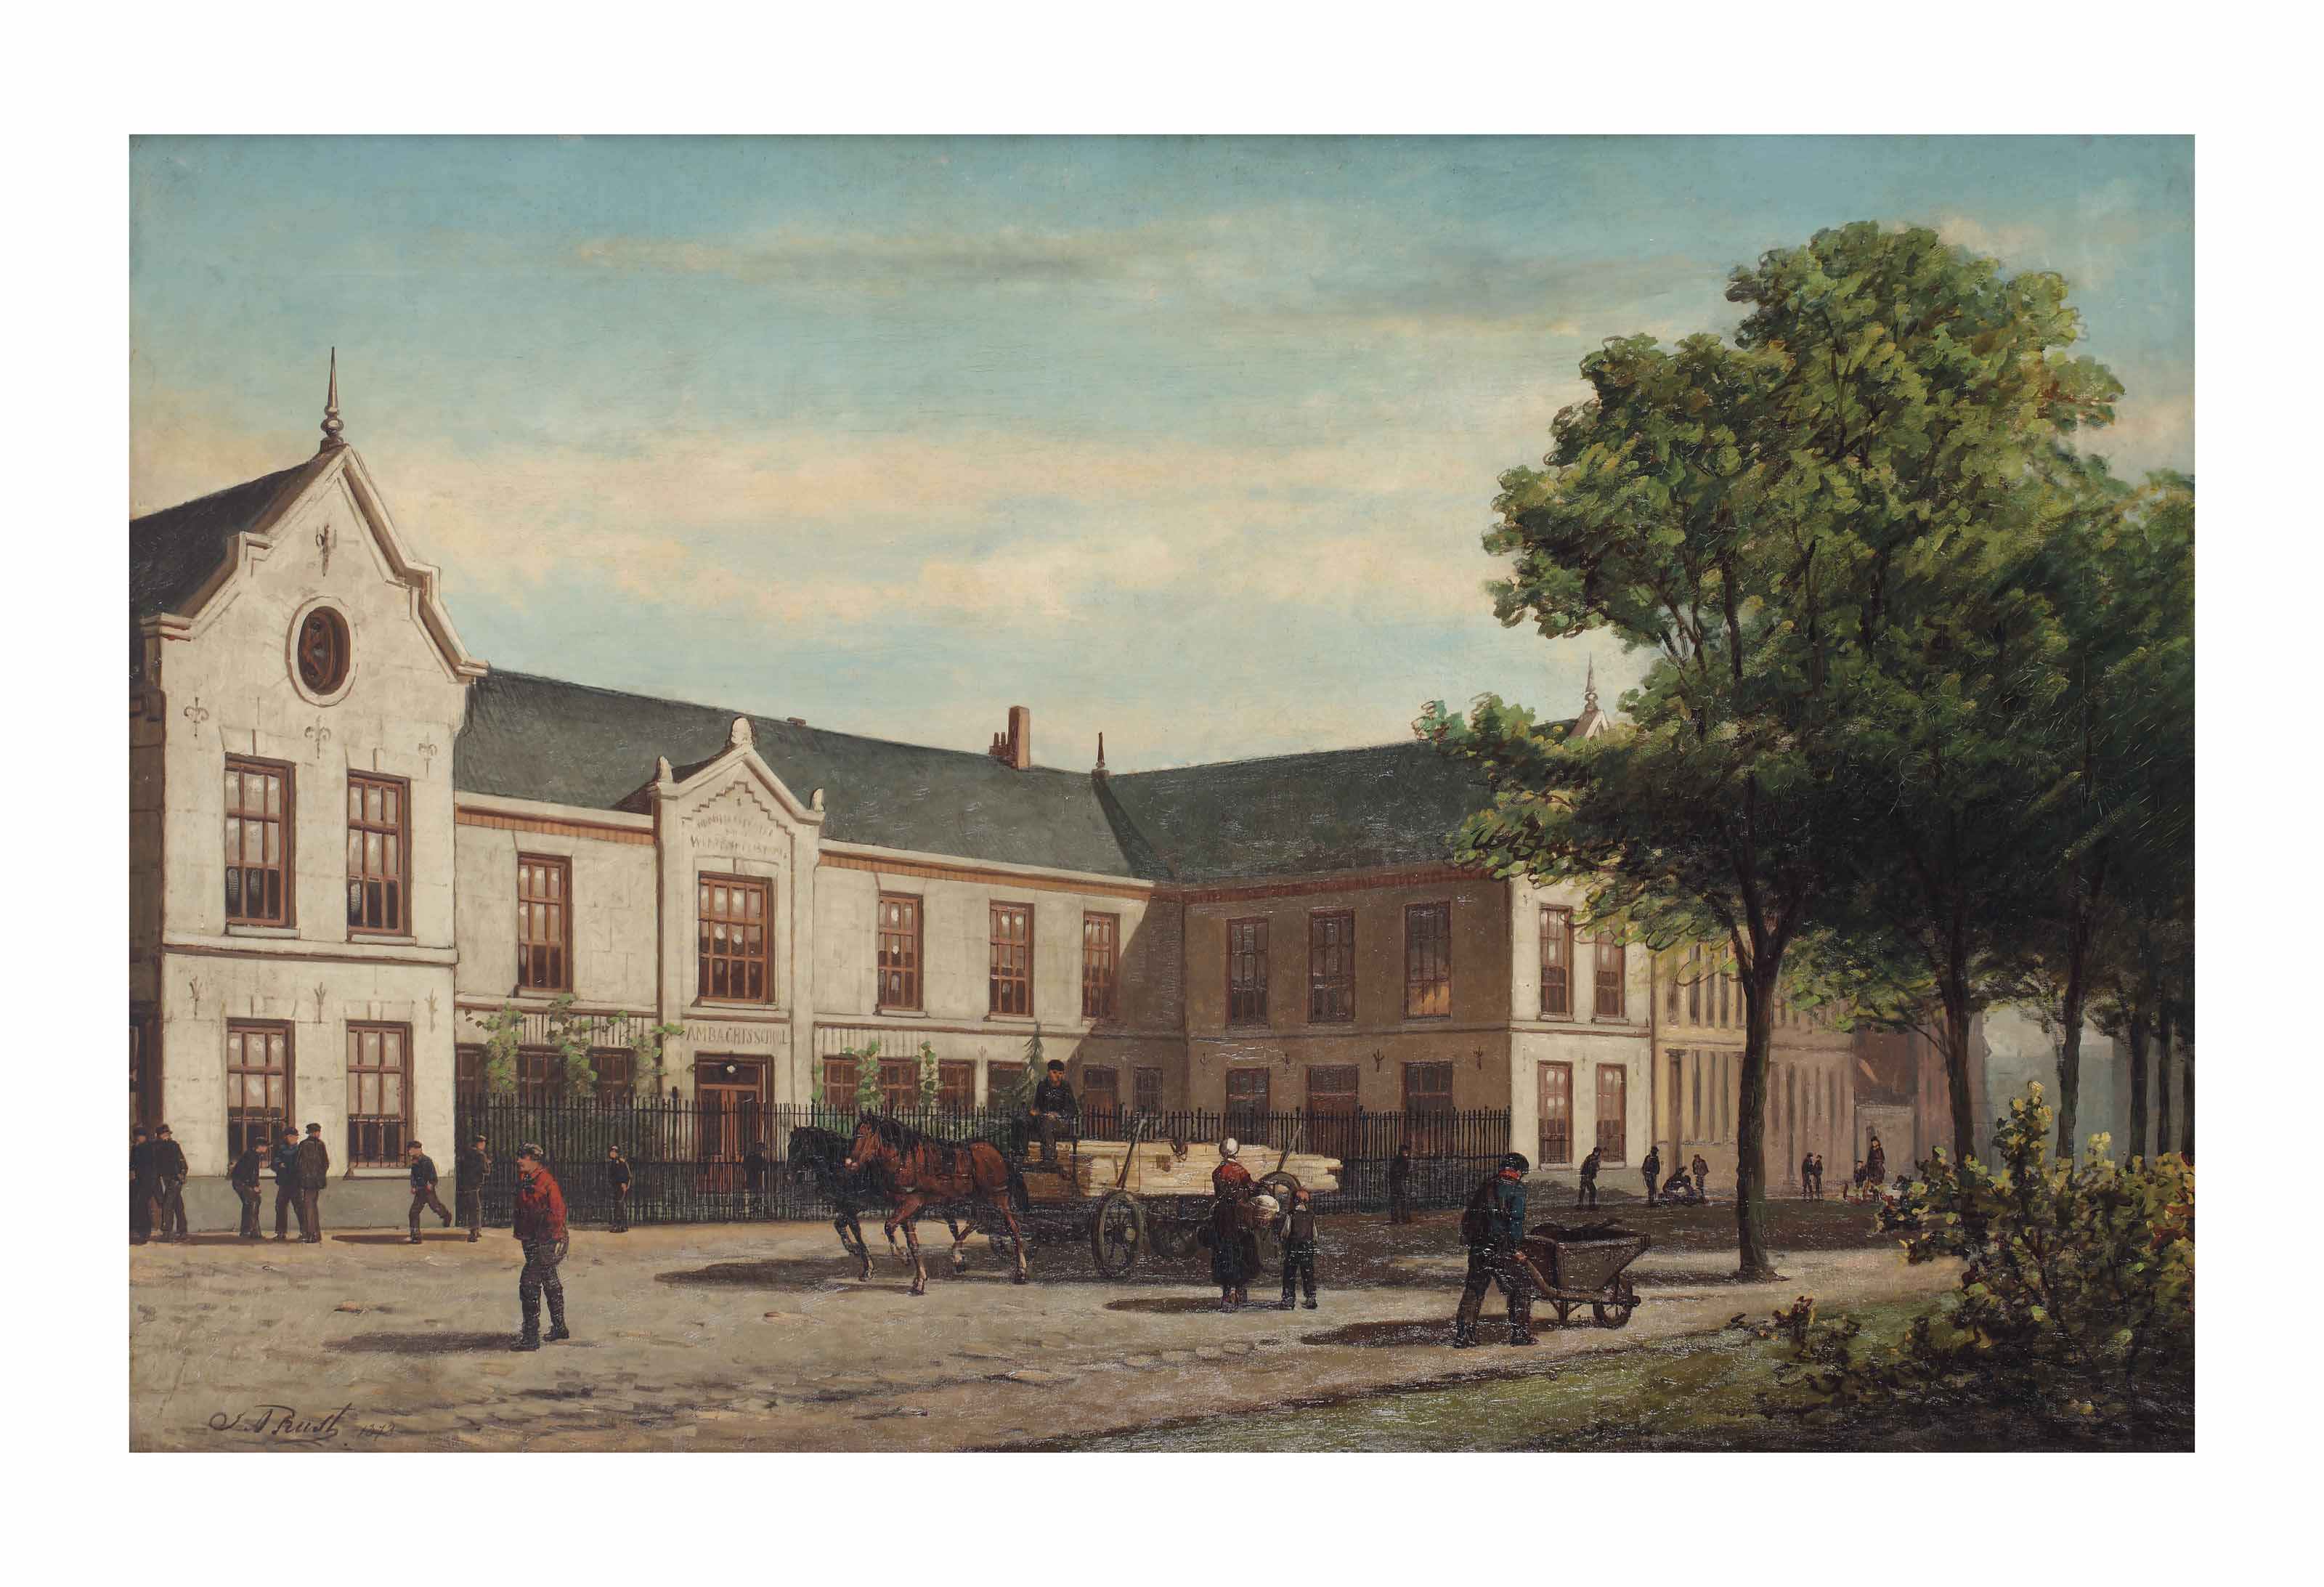 A busy day outside the Ambachtsschool, Weteringschans, Amsterdam